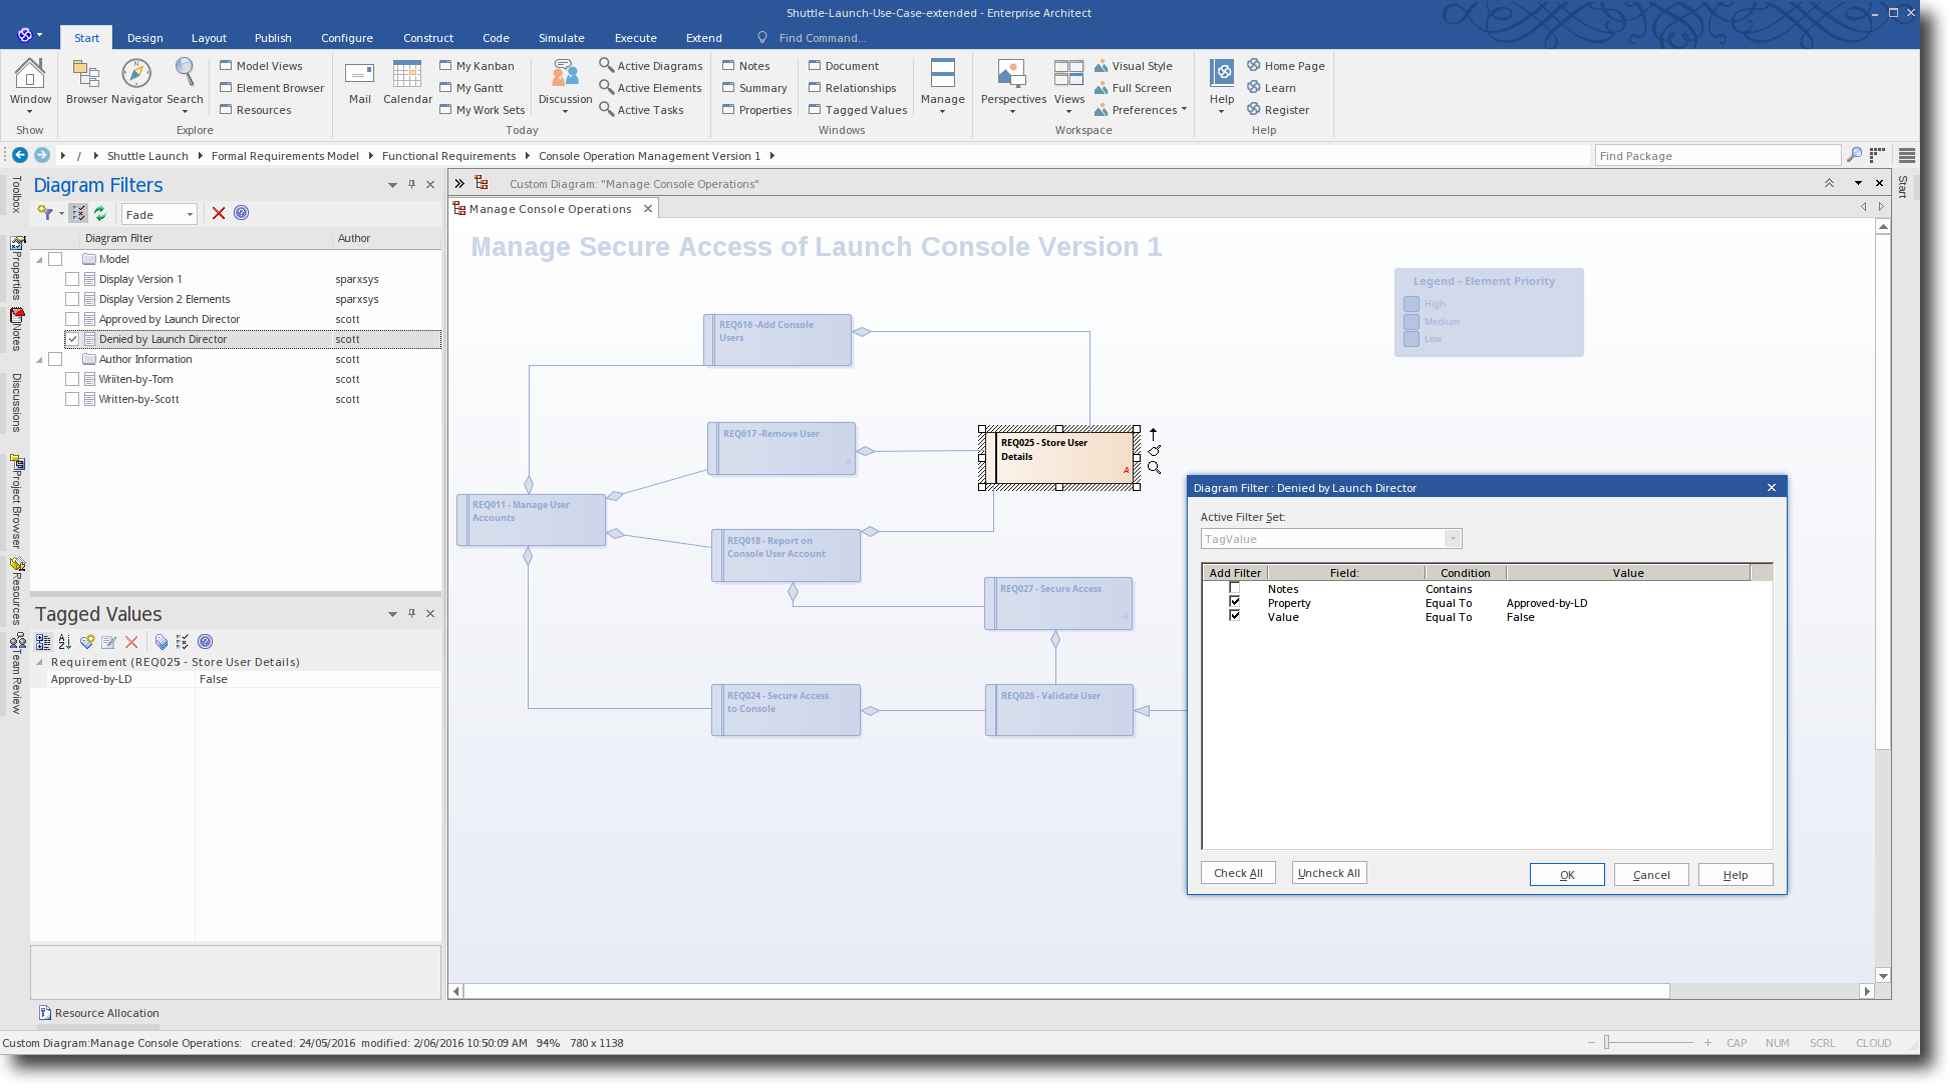 Enterprise Architect 13: Diagram Filtering - Configure Diagram Filter for false entry